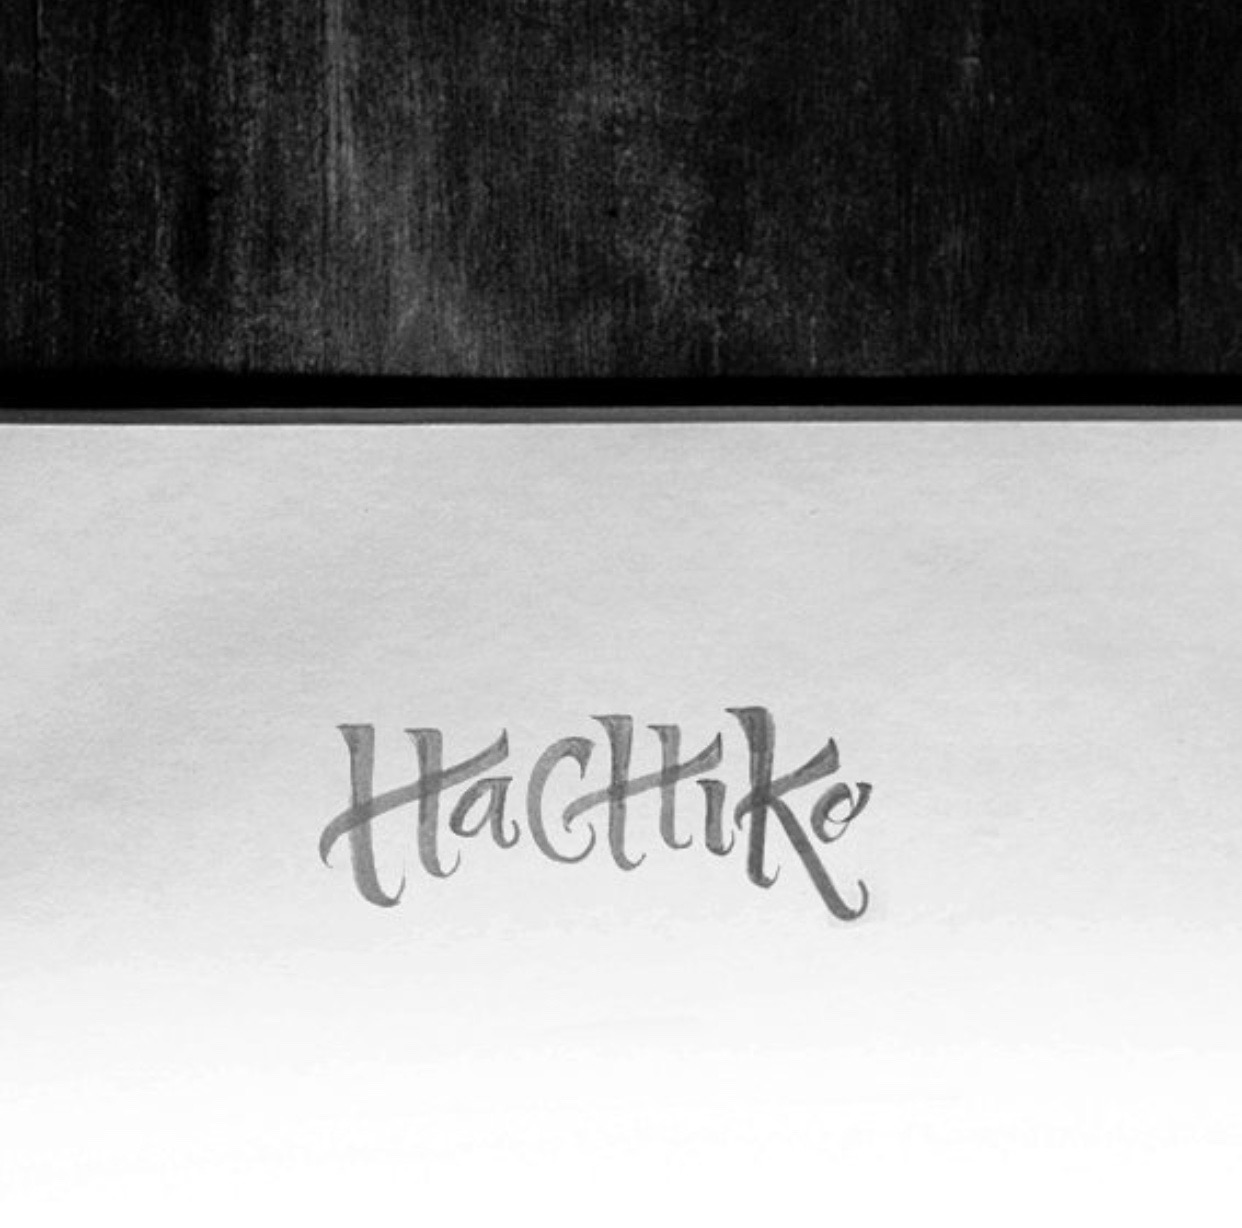 Hachike, crazy design examples, hipster, hip, stylish design with eastern influence